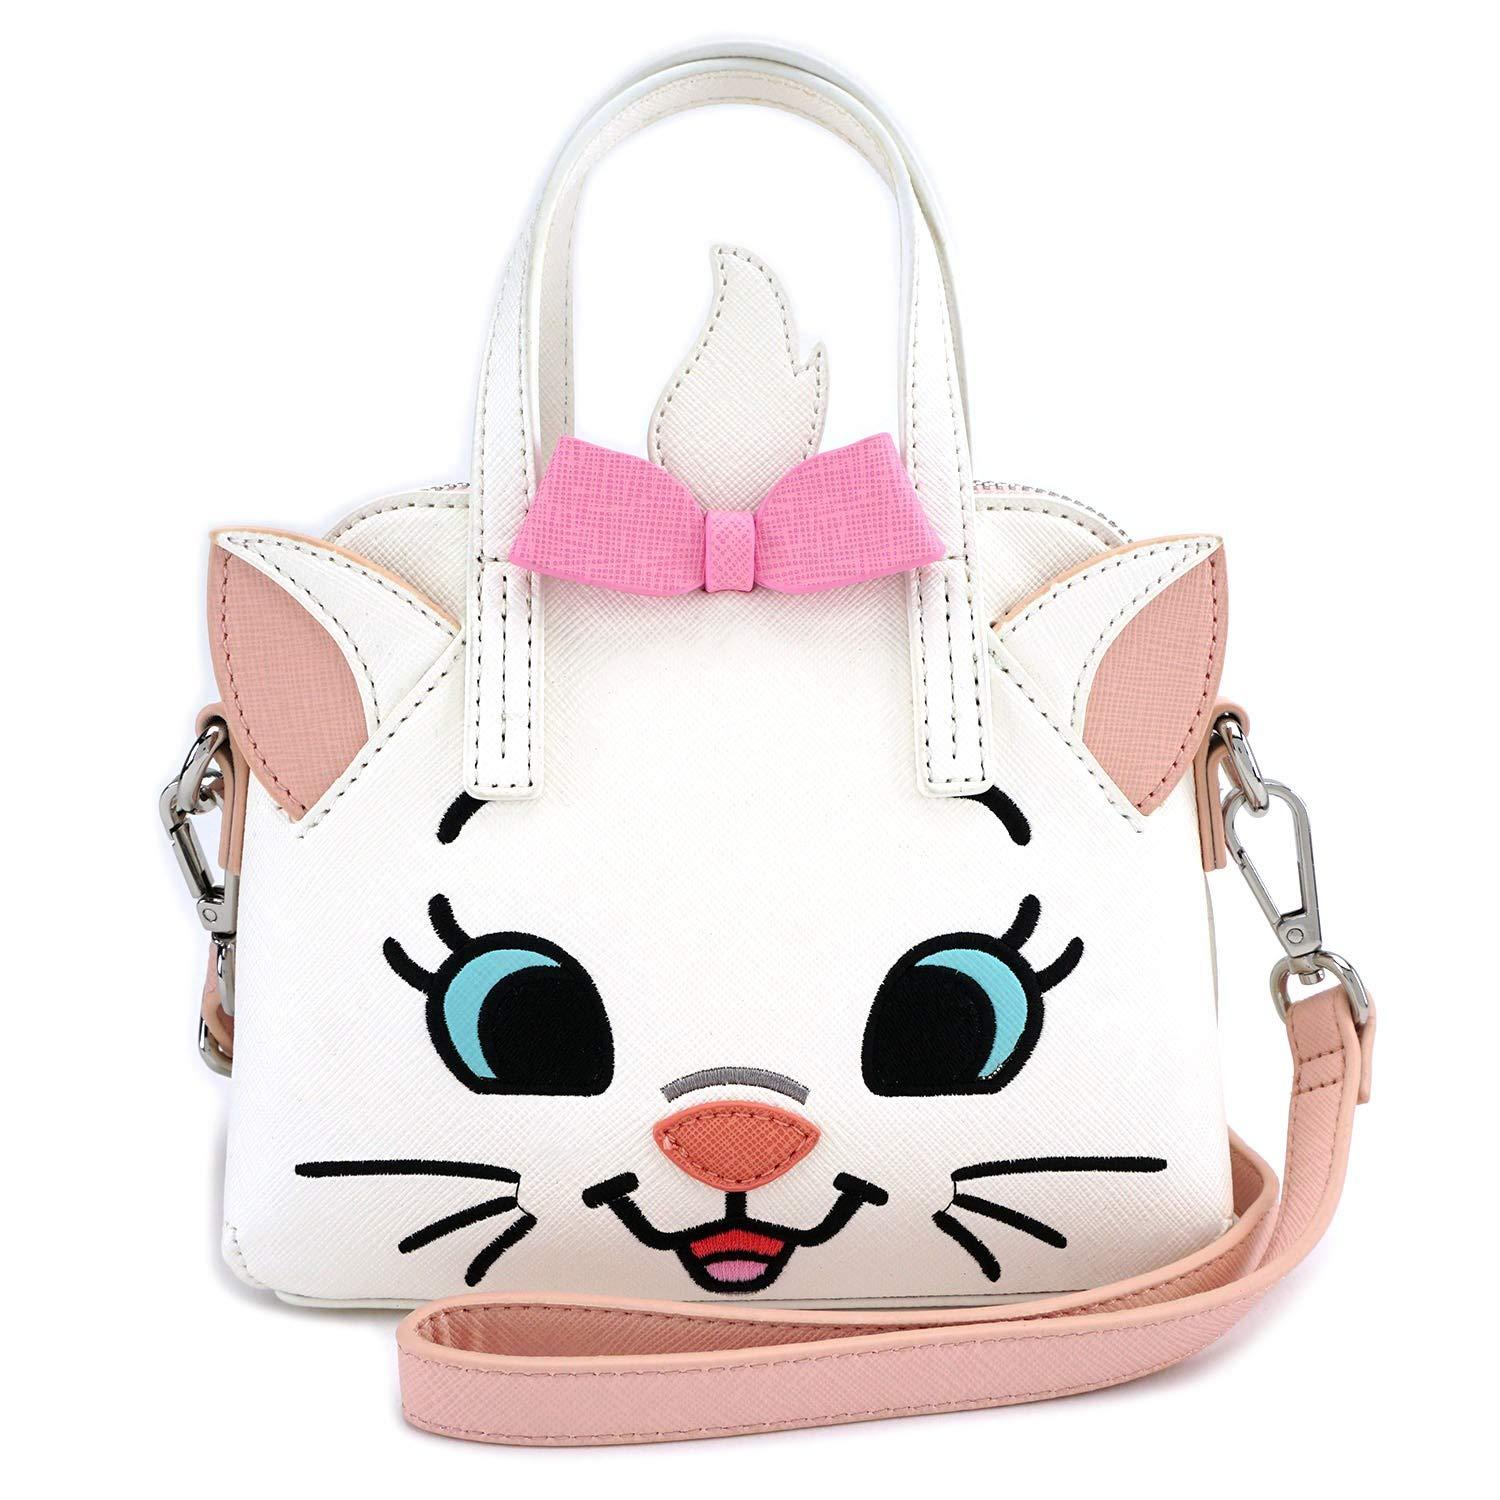 4c4e0af8462 Amazon.com  Loungefly x The Aristocats Marie Face Micro Purse (One Size